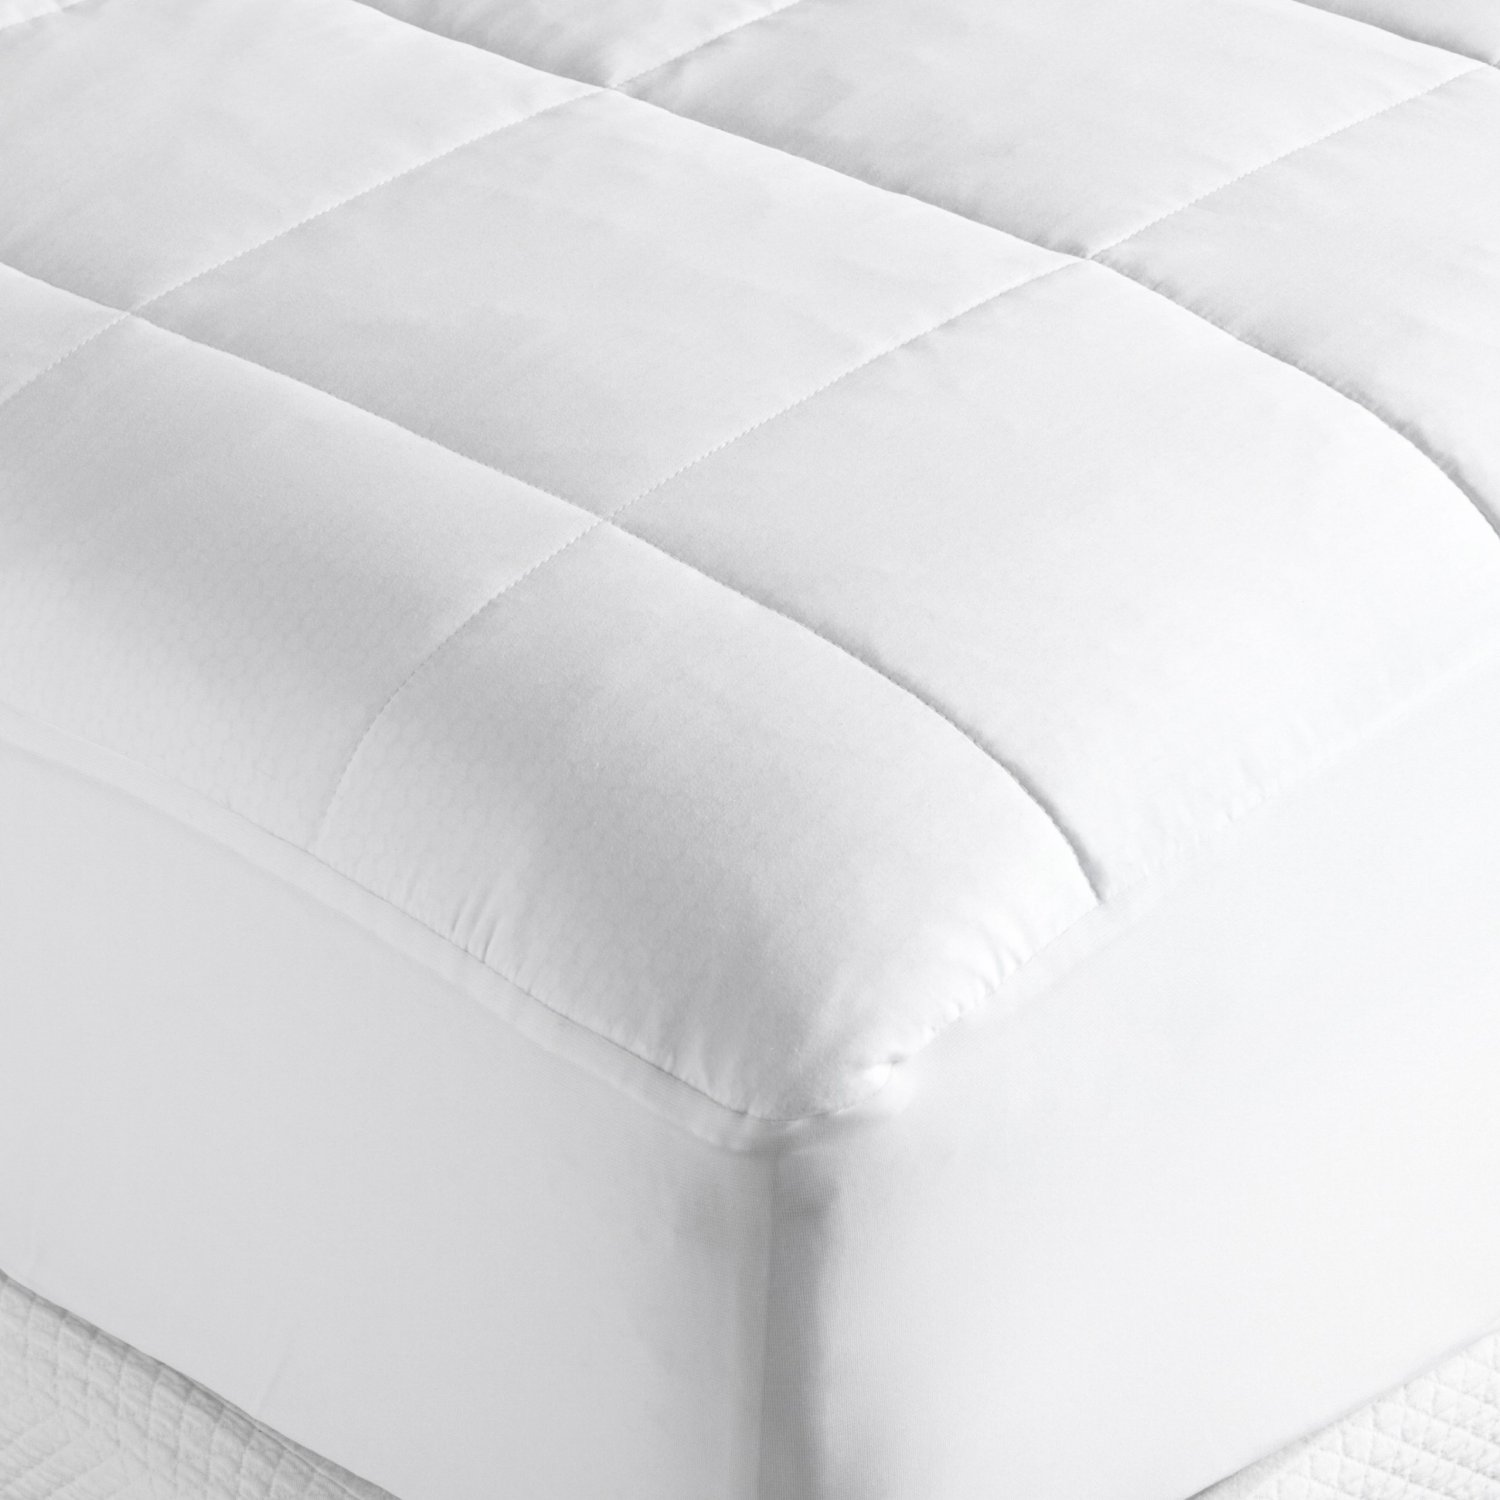 Top 10 Best Cooling Mattress Topper Reviews — Making the Best Choice in 2020